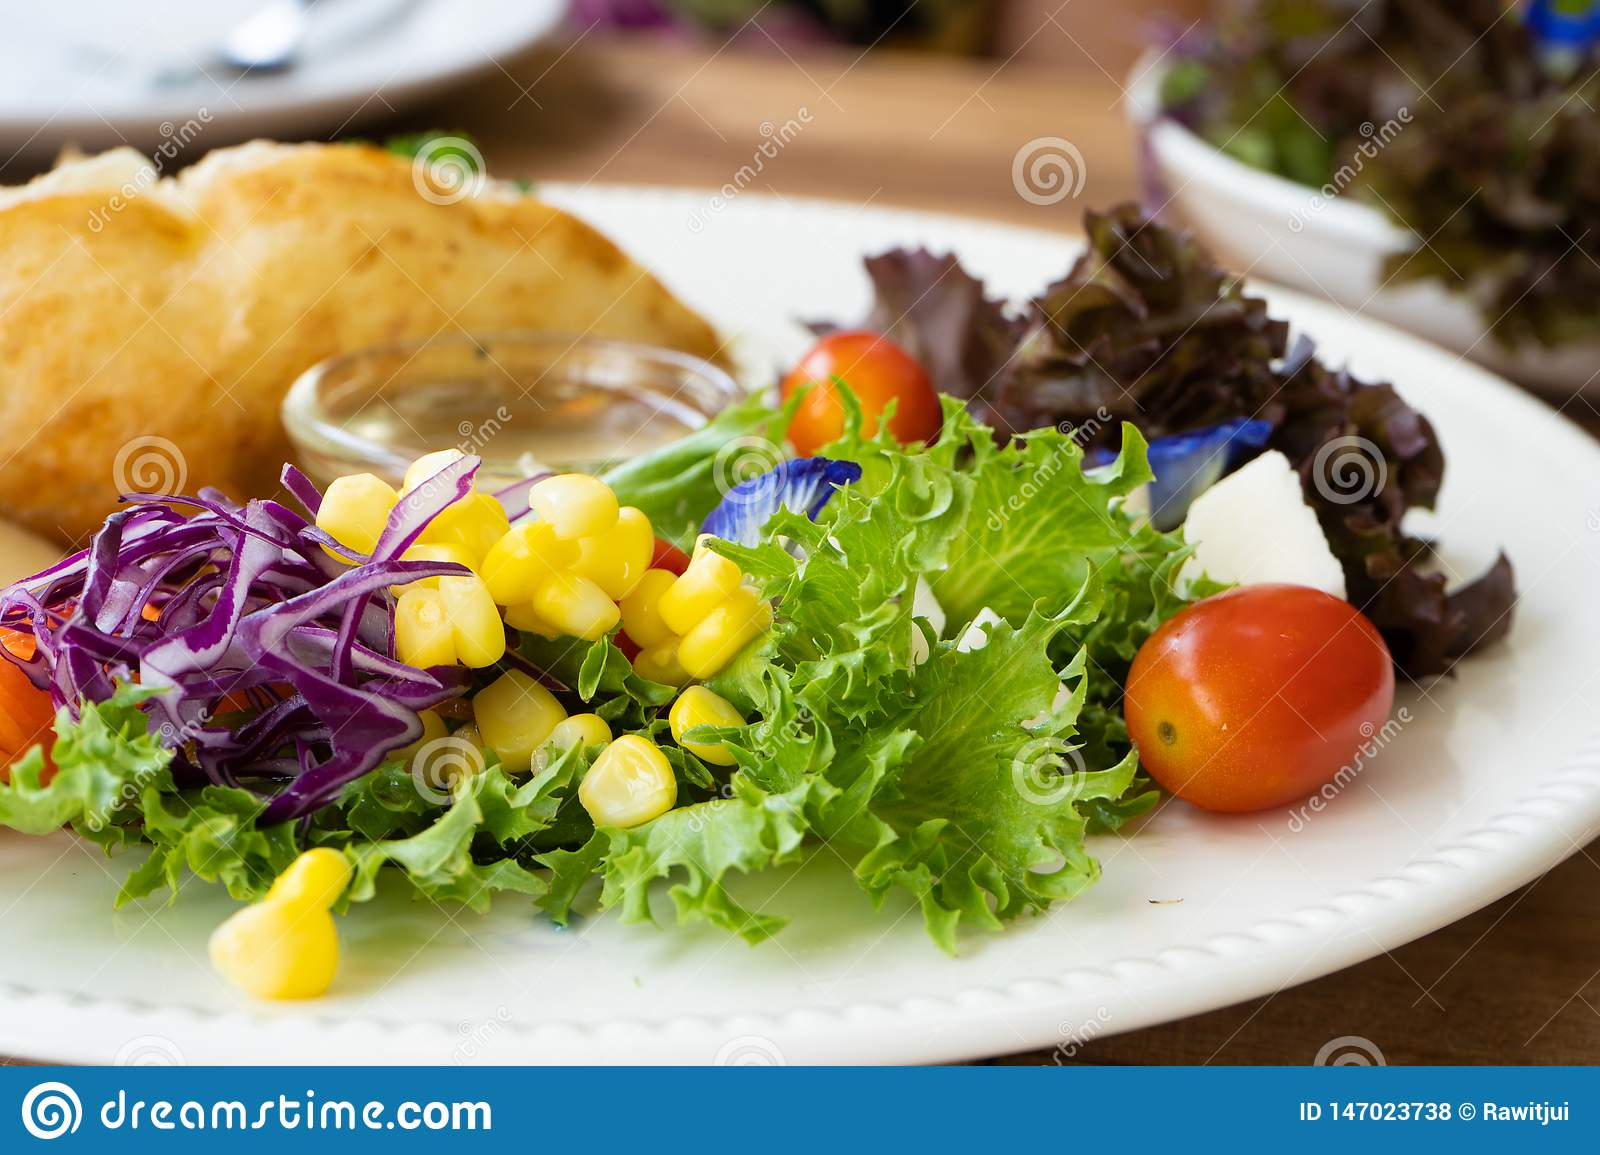 Salad side dish on a white plate